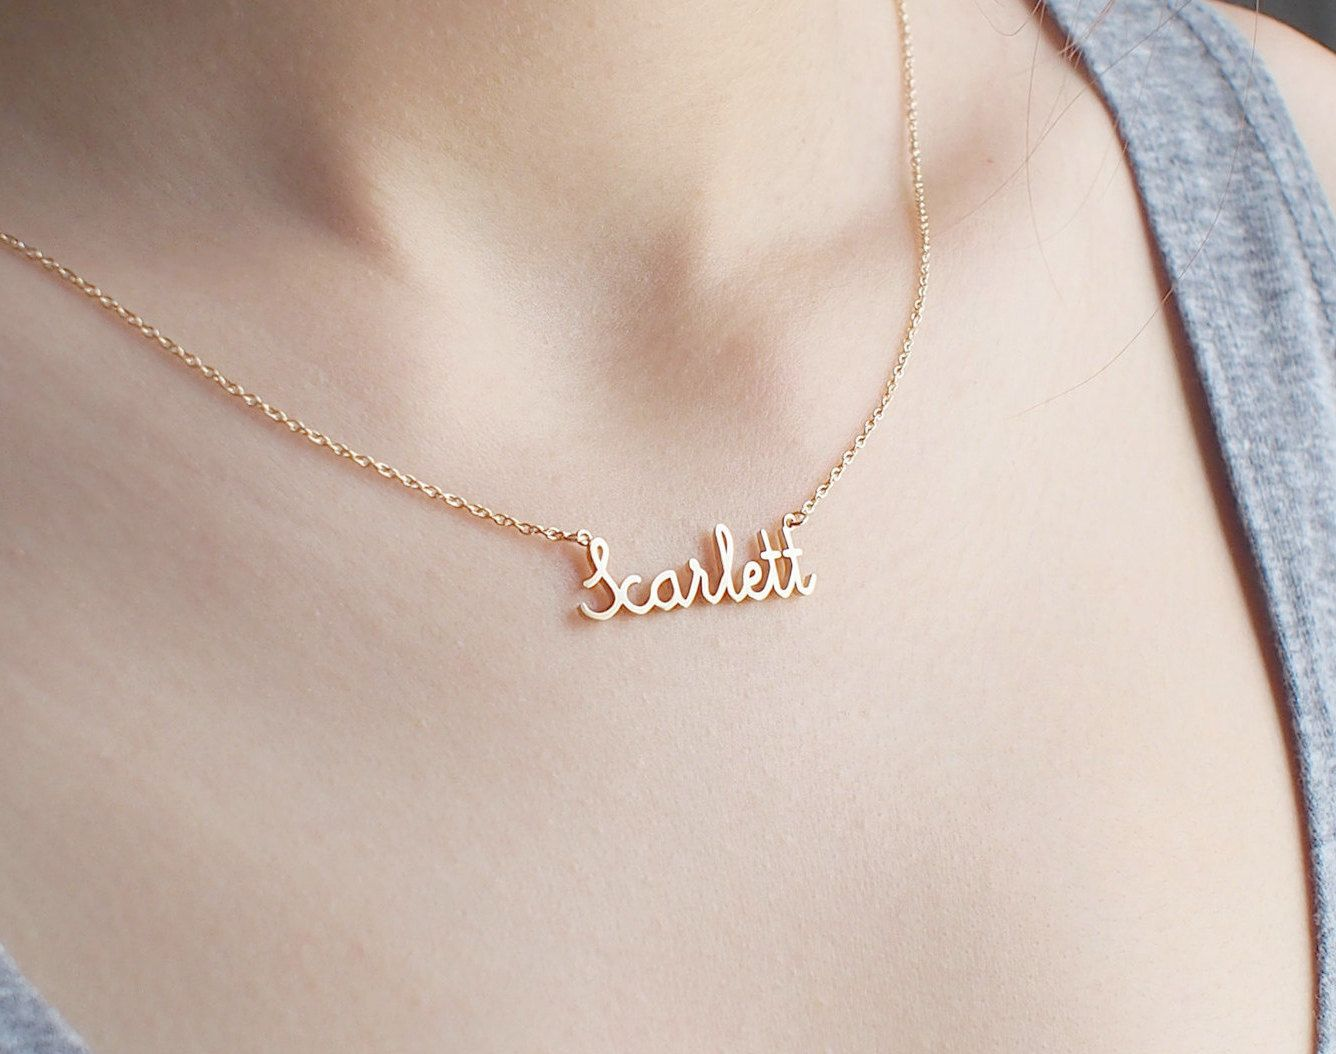 20 off custom name necklace personalized name jewelry baby name 20 off custom name necklace personalized name jewelry baby name friendship necklaces aloadofball Image collections